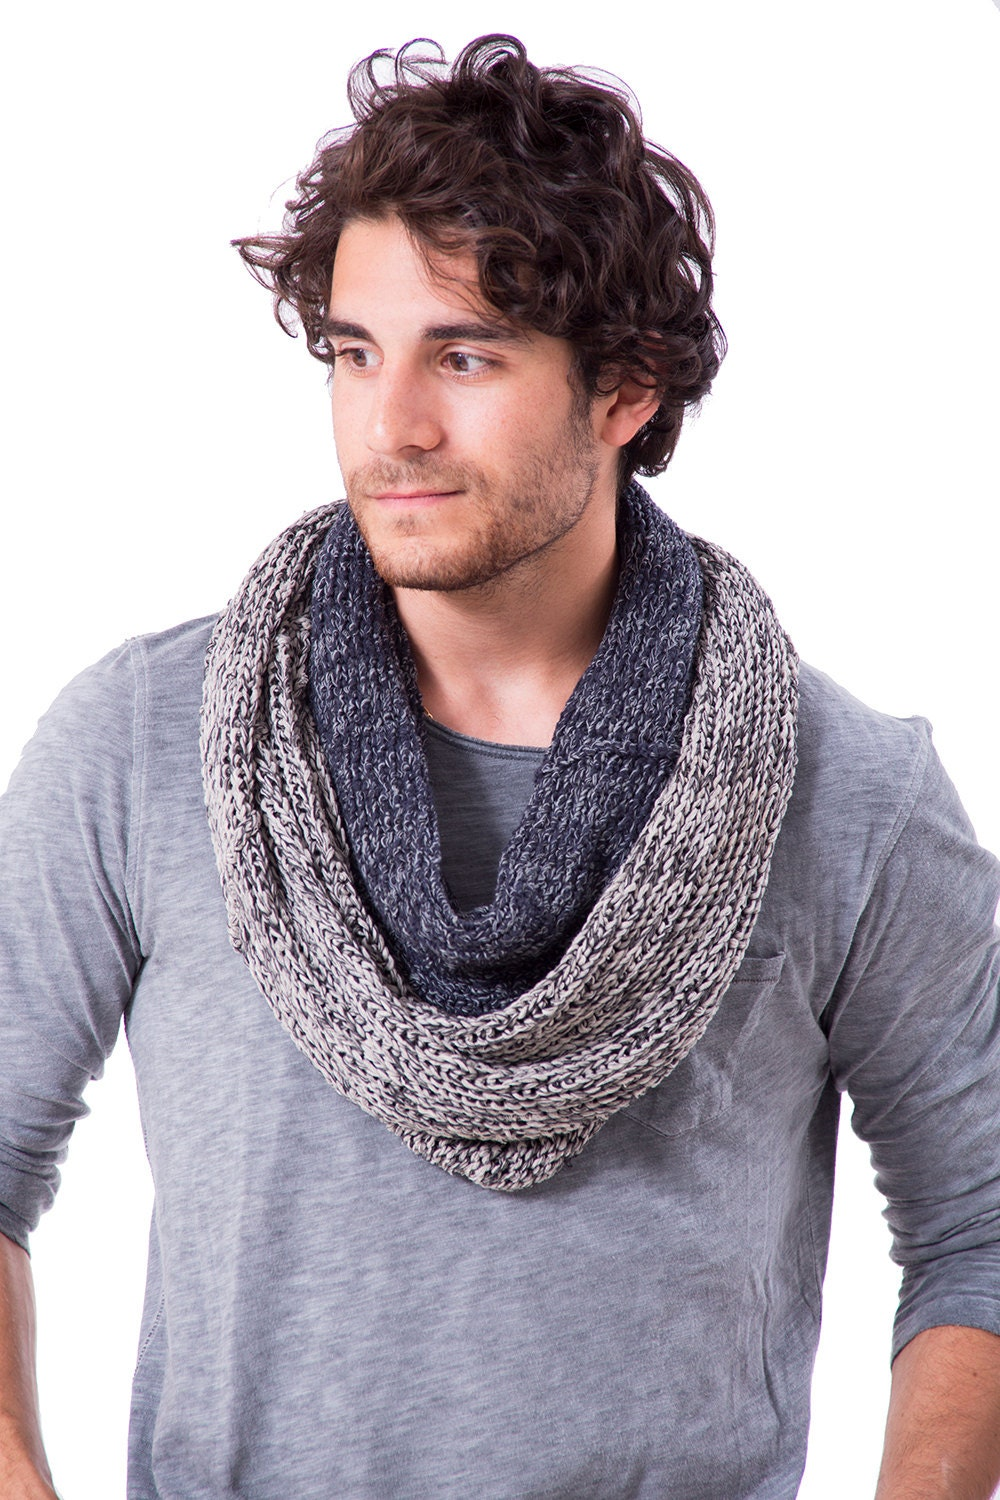 Scarfs Men Scarf And Casual On Pinterest Nice Scarves: Men Scarf Men's Infinity Scarf Knitting Men's By TOOSHAAYA